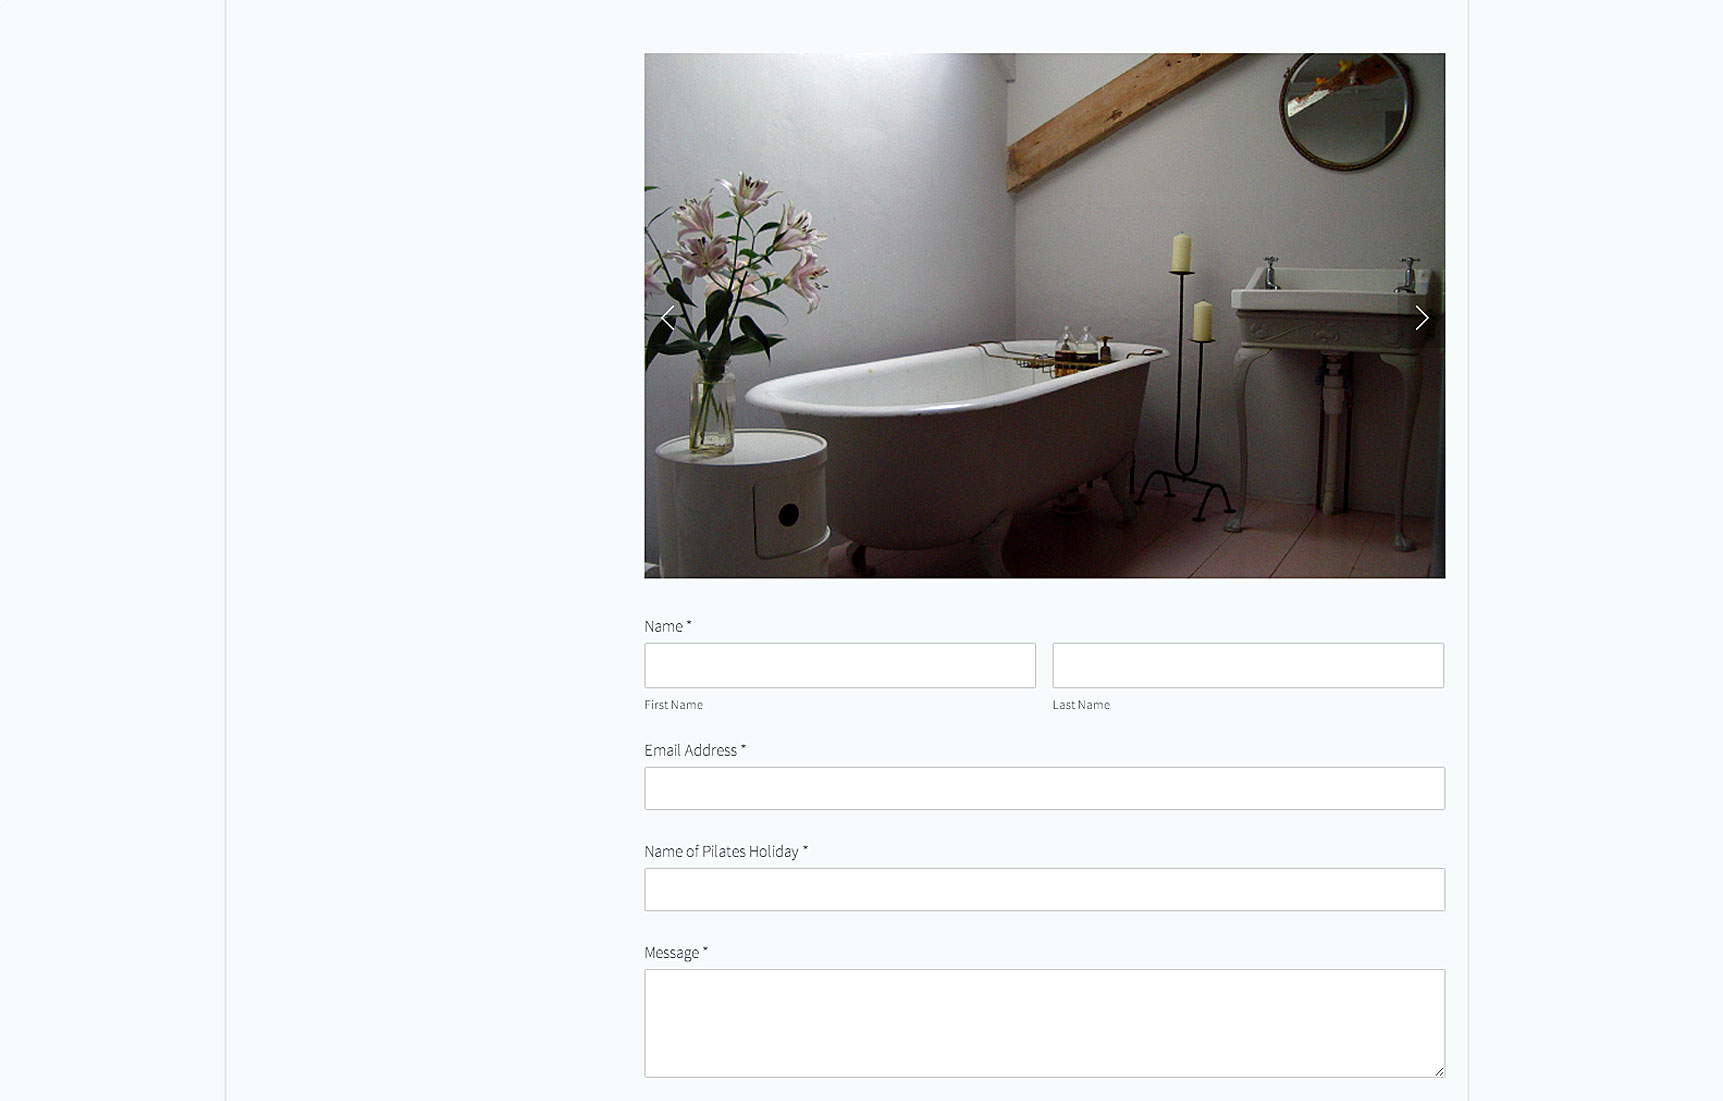 website page for pilates holiday bookings with photo of beautiful bathroom with roll top bath